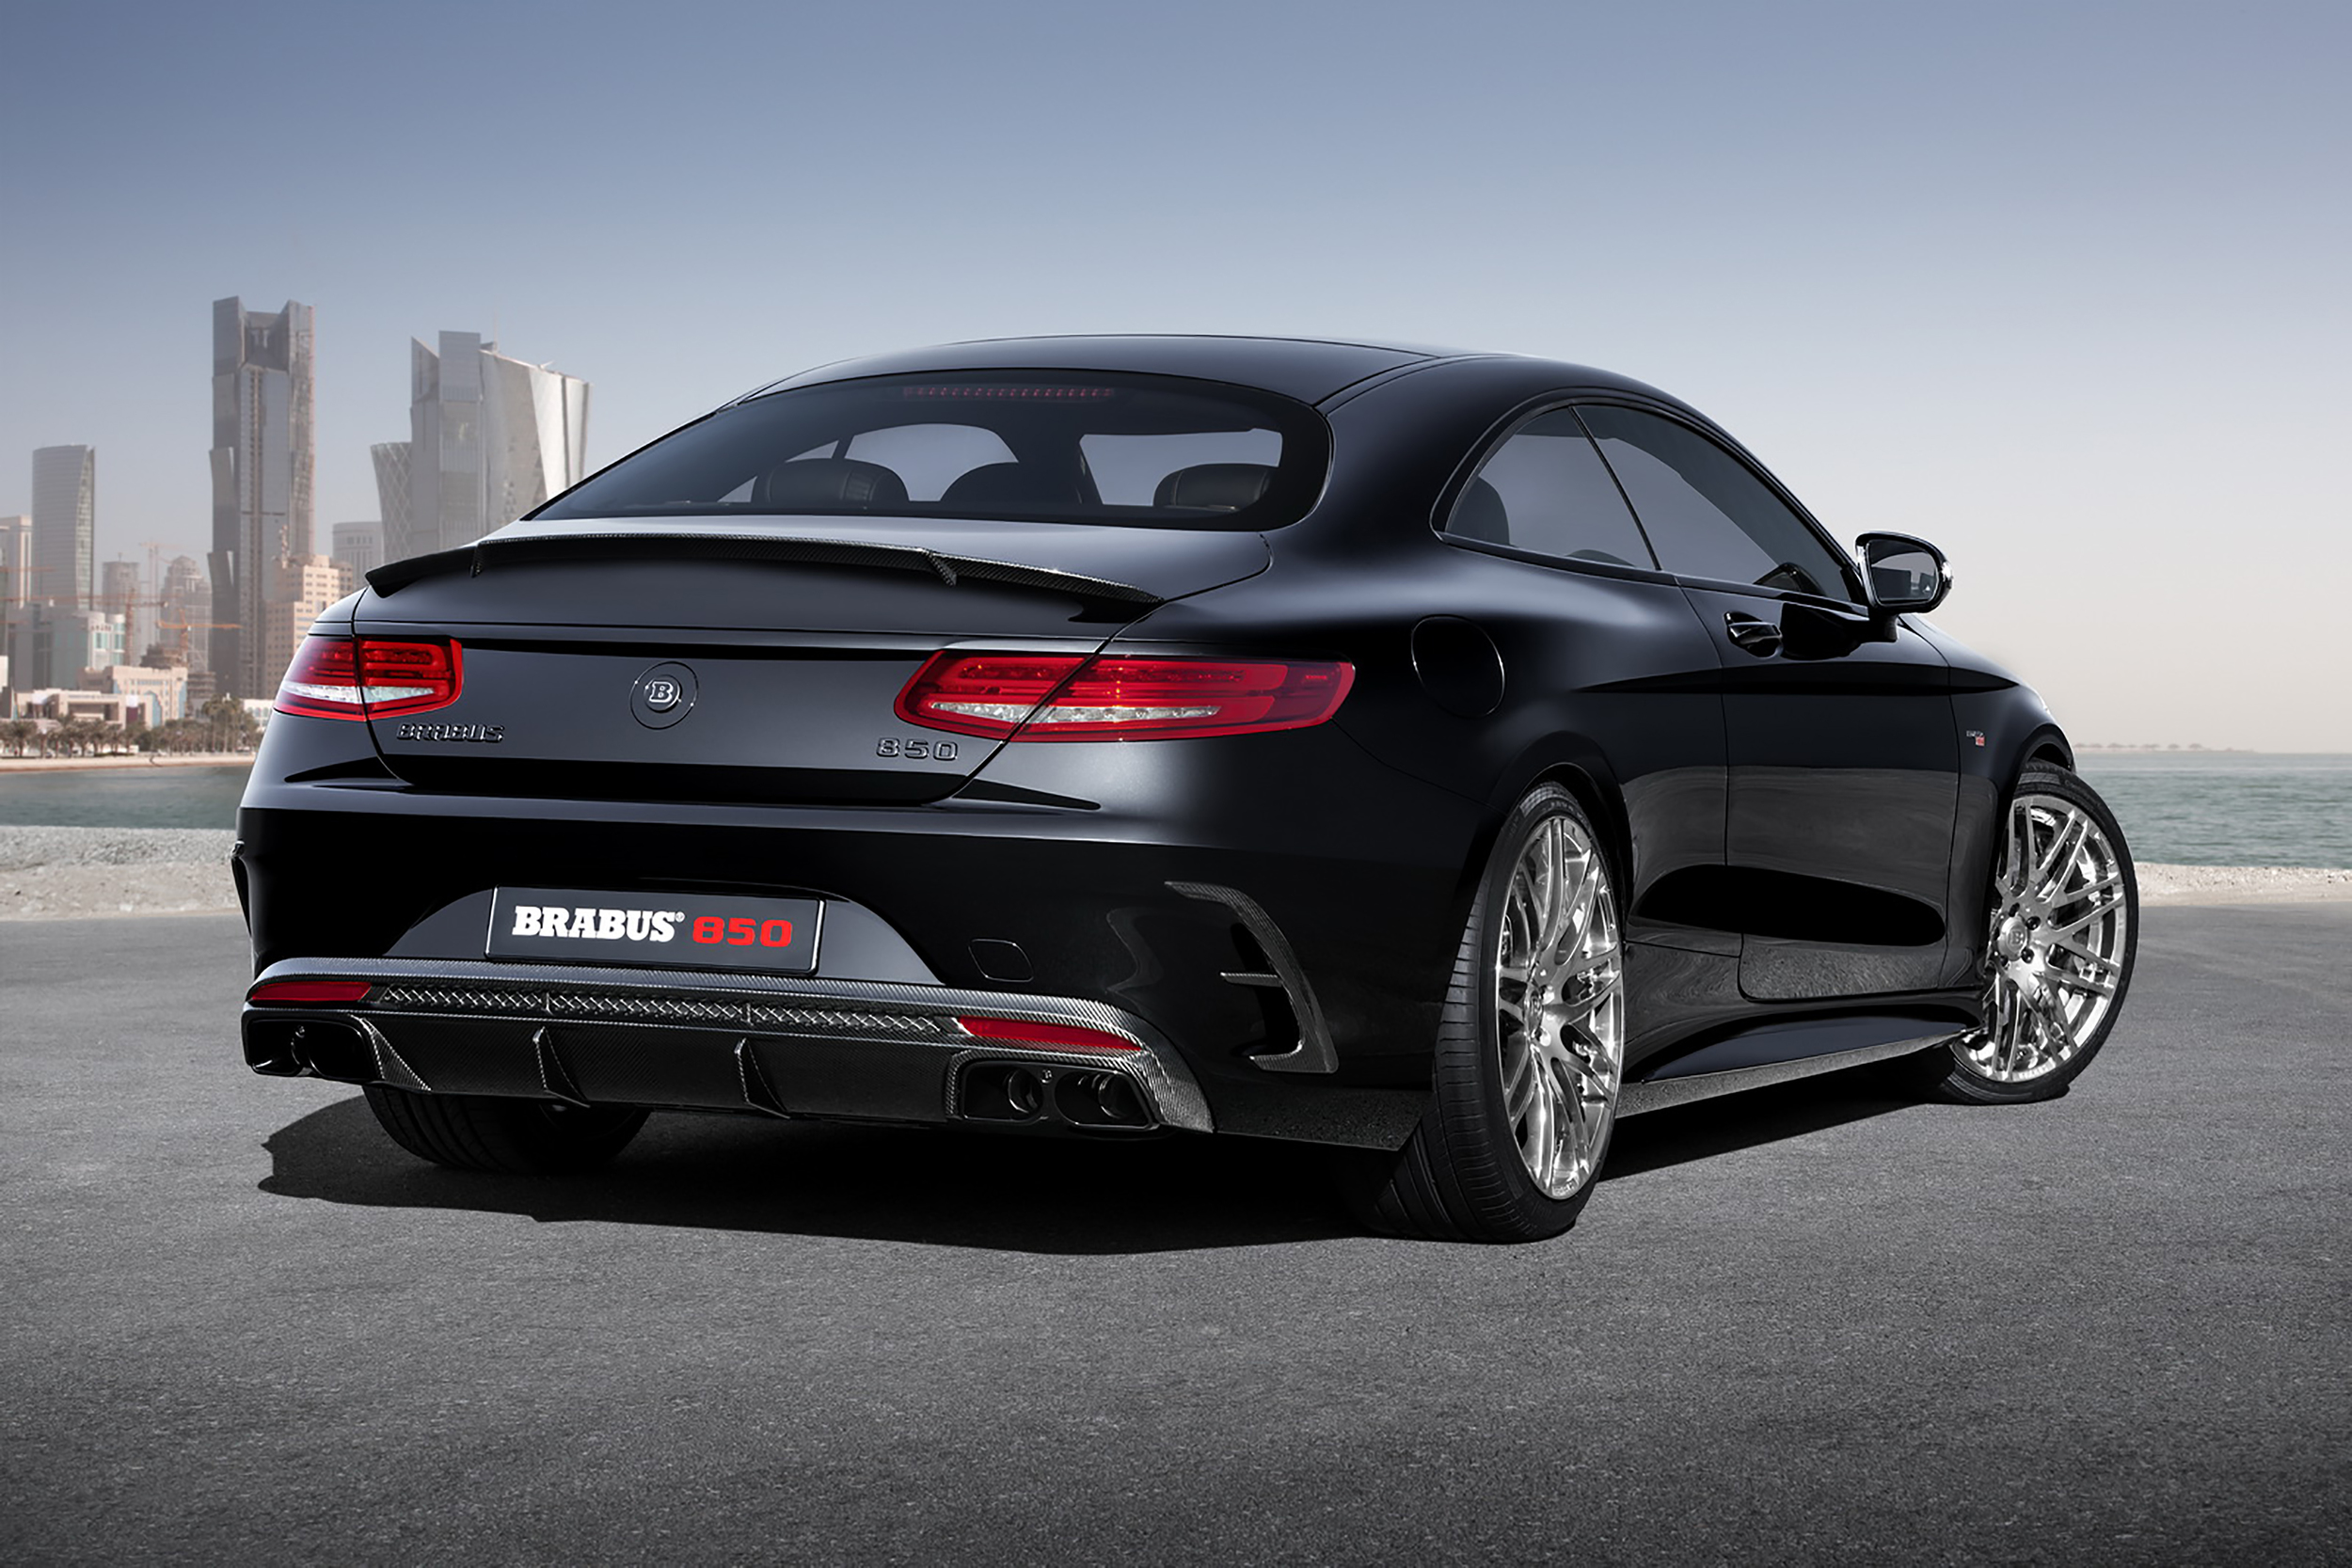 ' ' from the web at 'http://www.blogcdn.com/slideshows/images/slides/335/946/3/S3359463/slug/l/brabus-s-class-coupe-02-1.jpg'